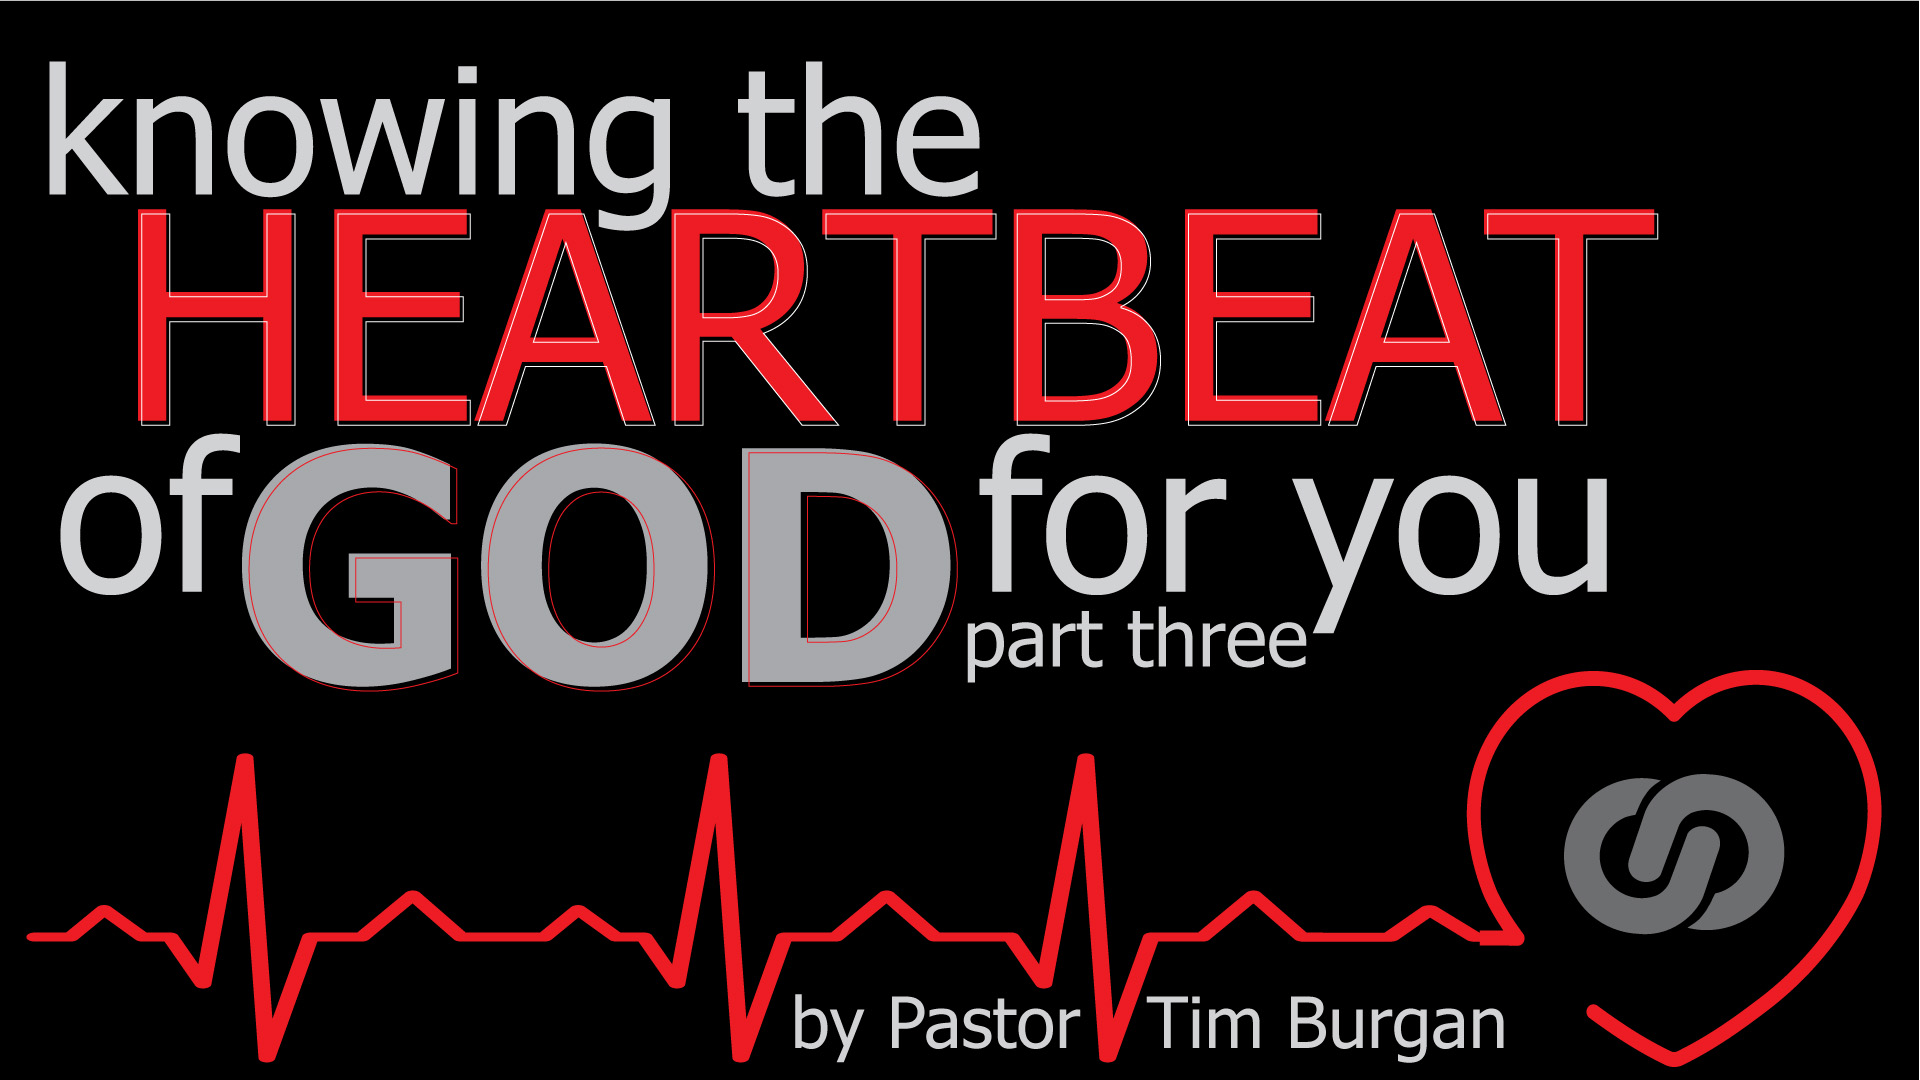 Knowing the heartbeat of God for you! Part 3